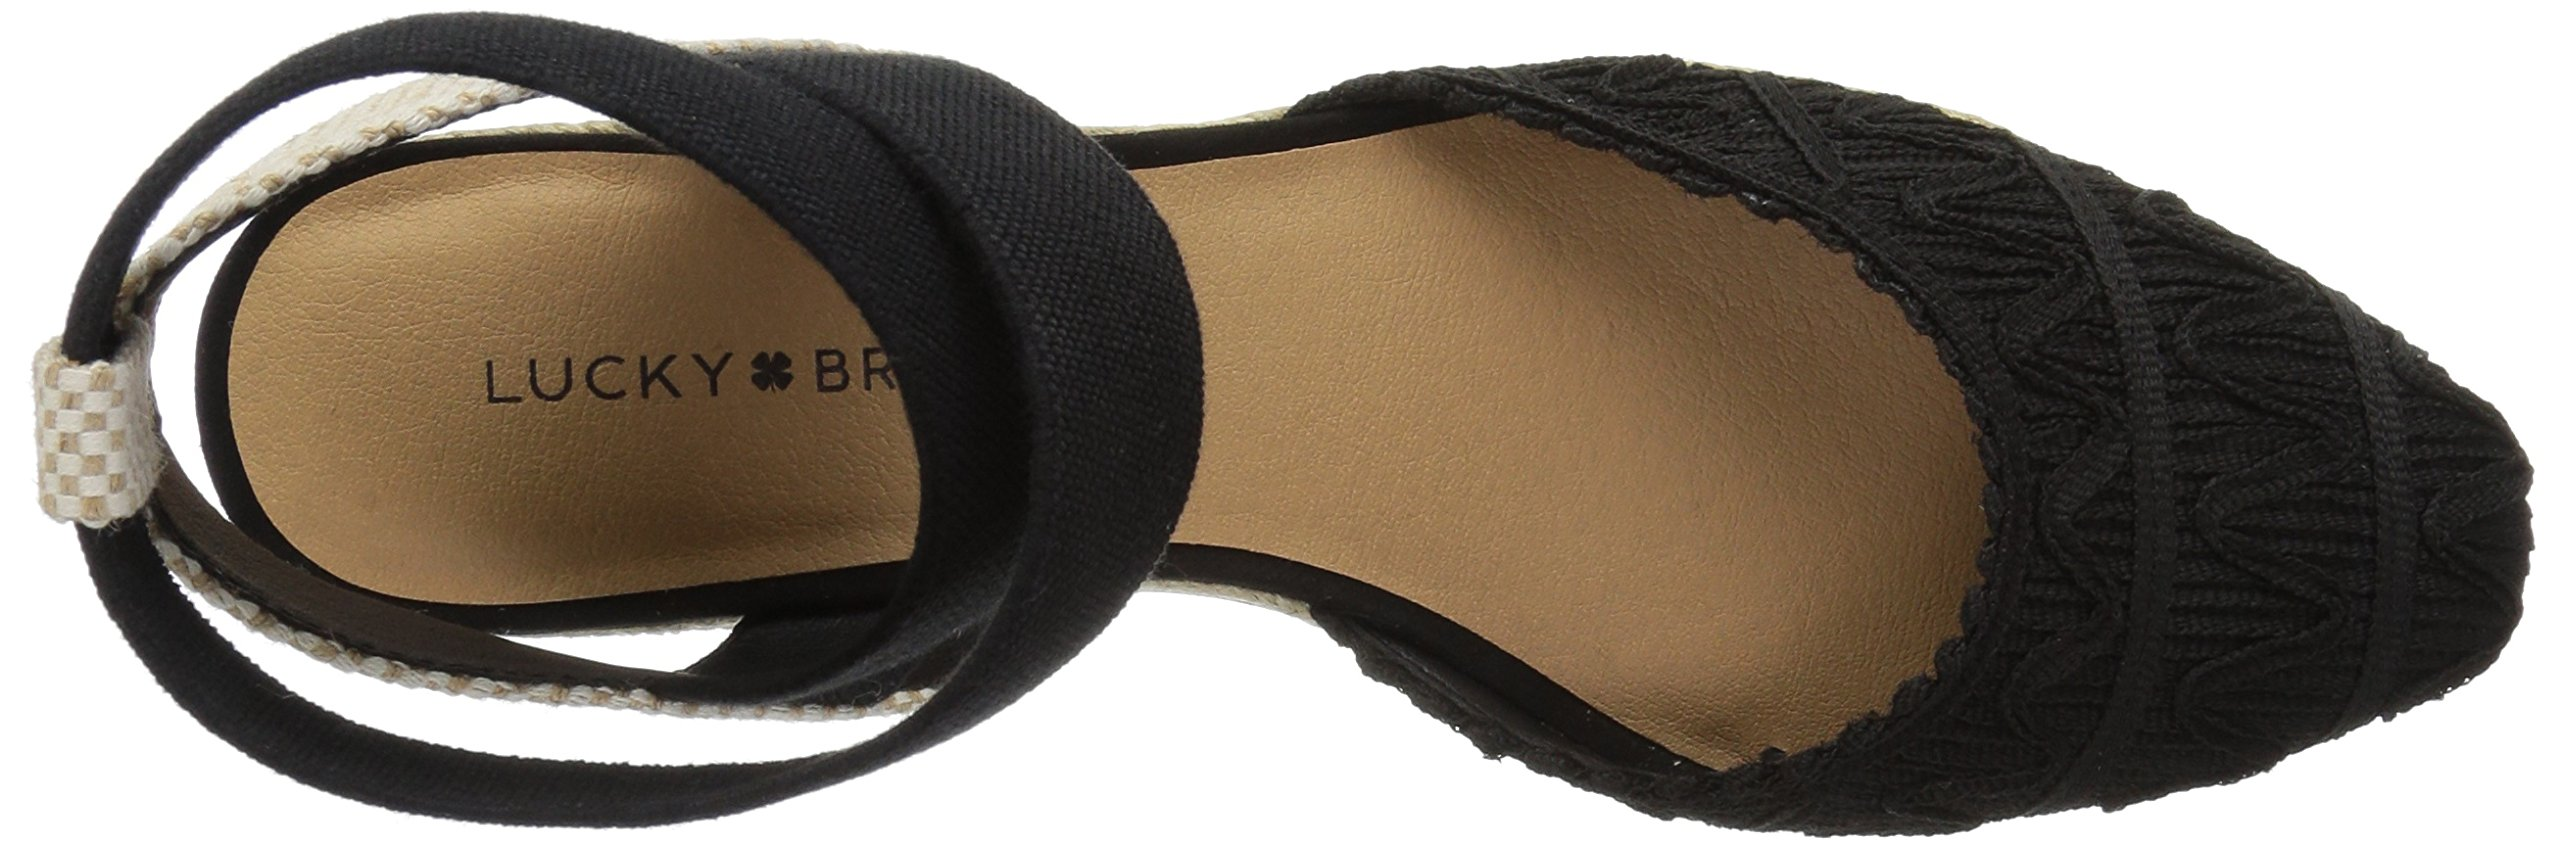 Lucky Brand Women's Luvinia Pump, Black, 7 M US by Lucky Brand (Image #7)